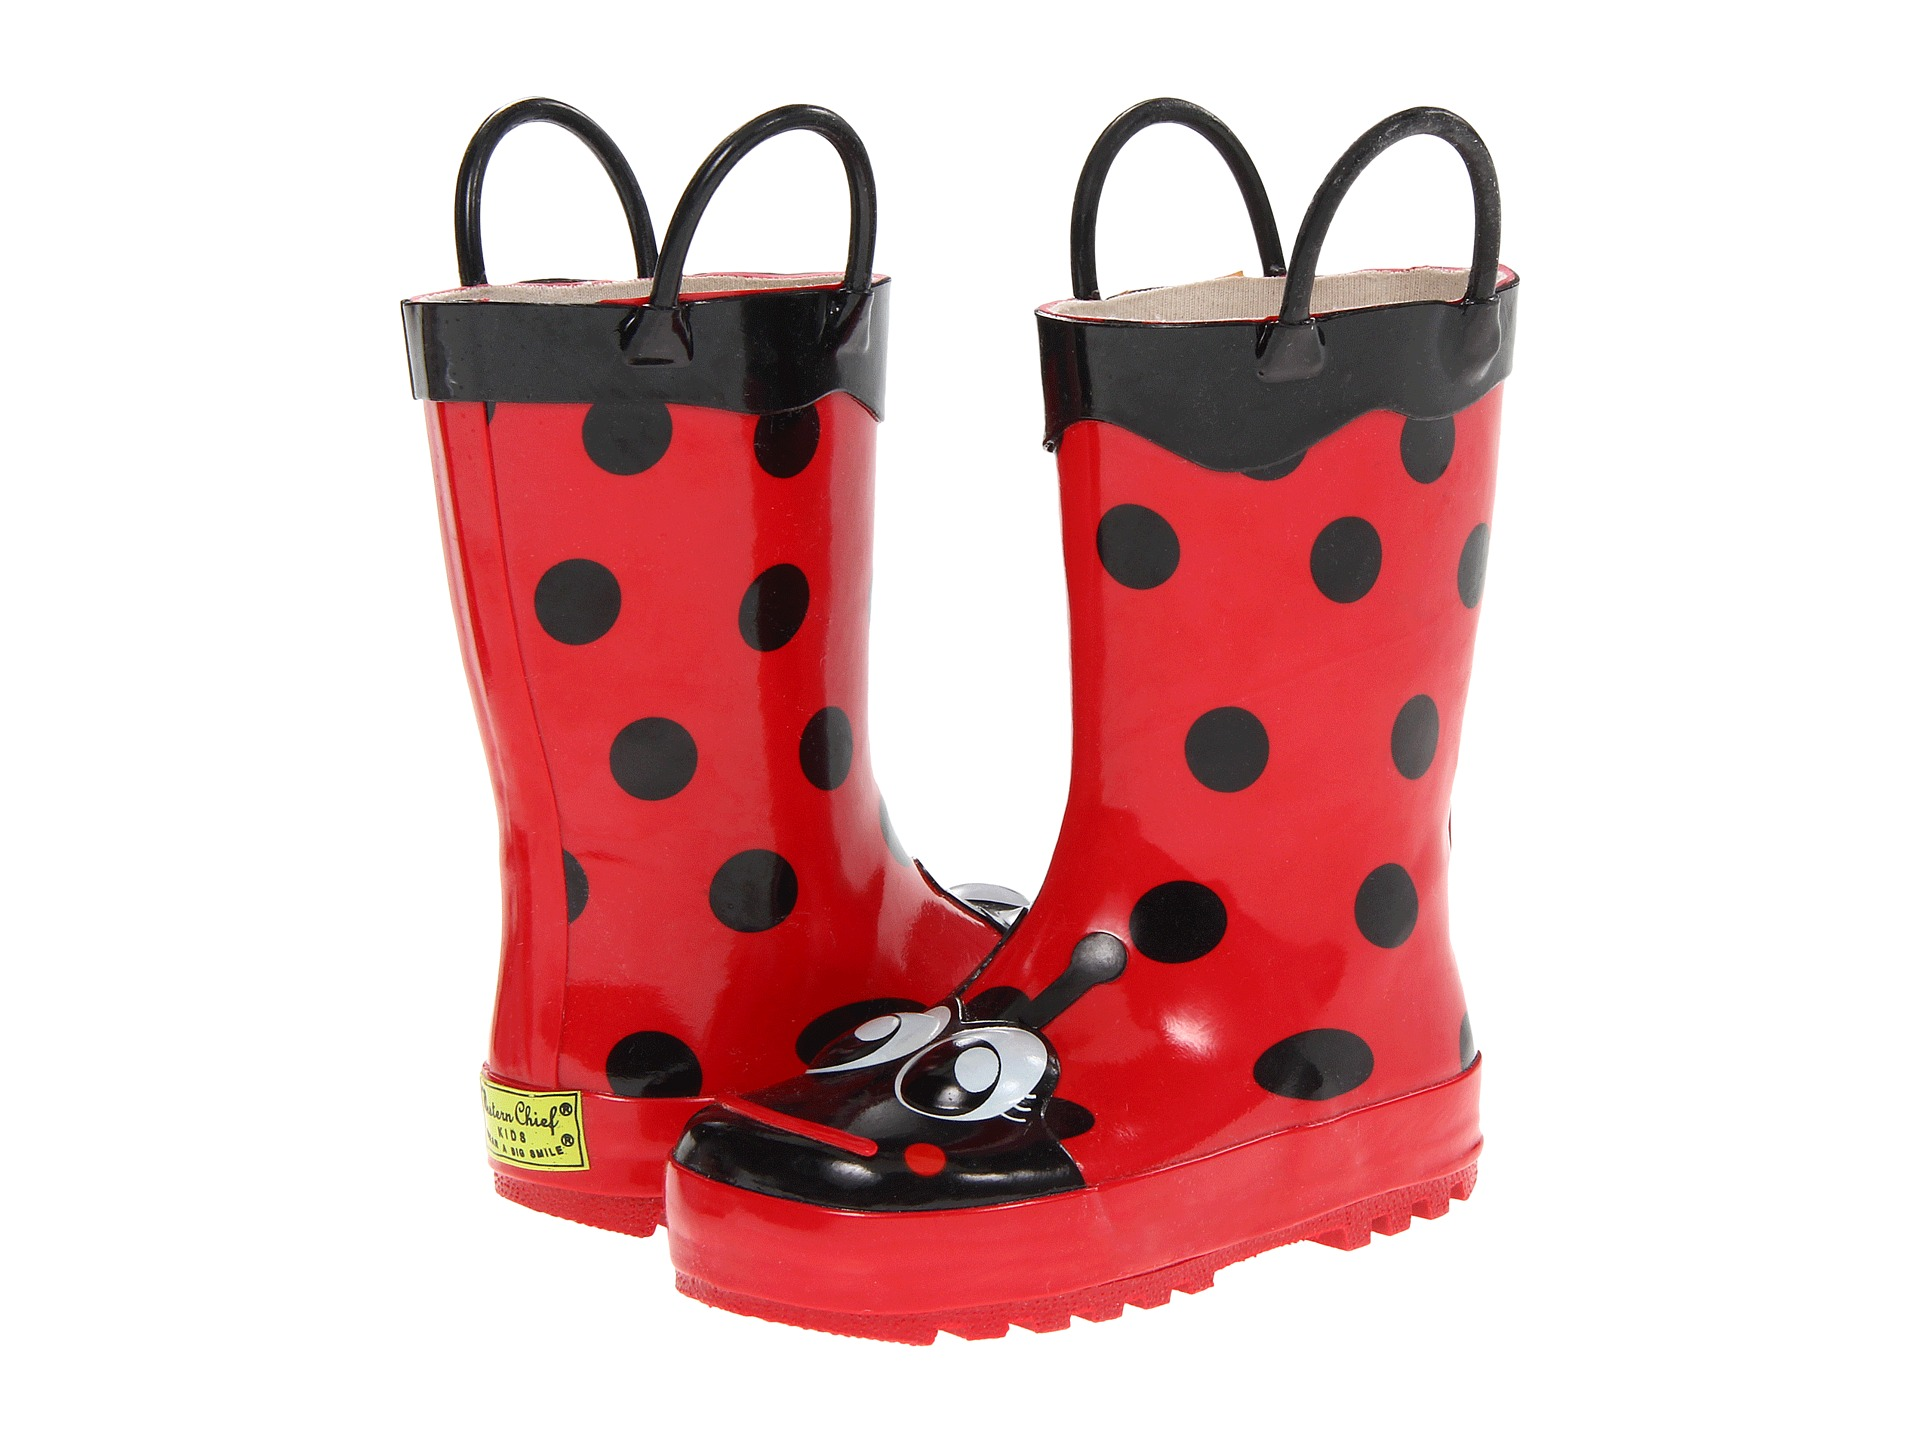 Western Chief Kids Ladybug Raincoat Red Ladybug, Red | Shipped ...